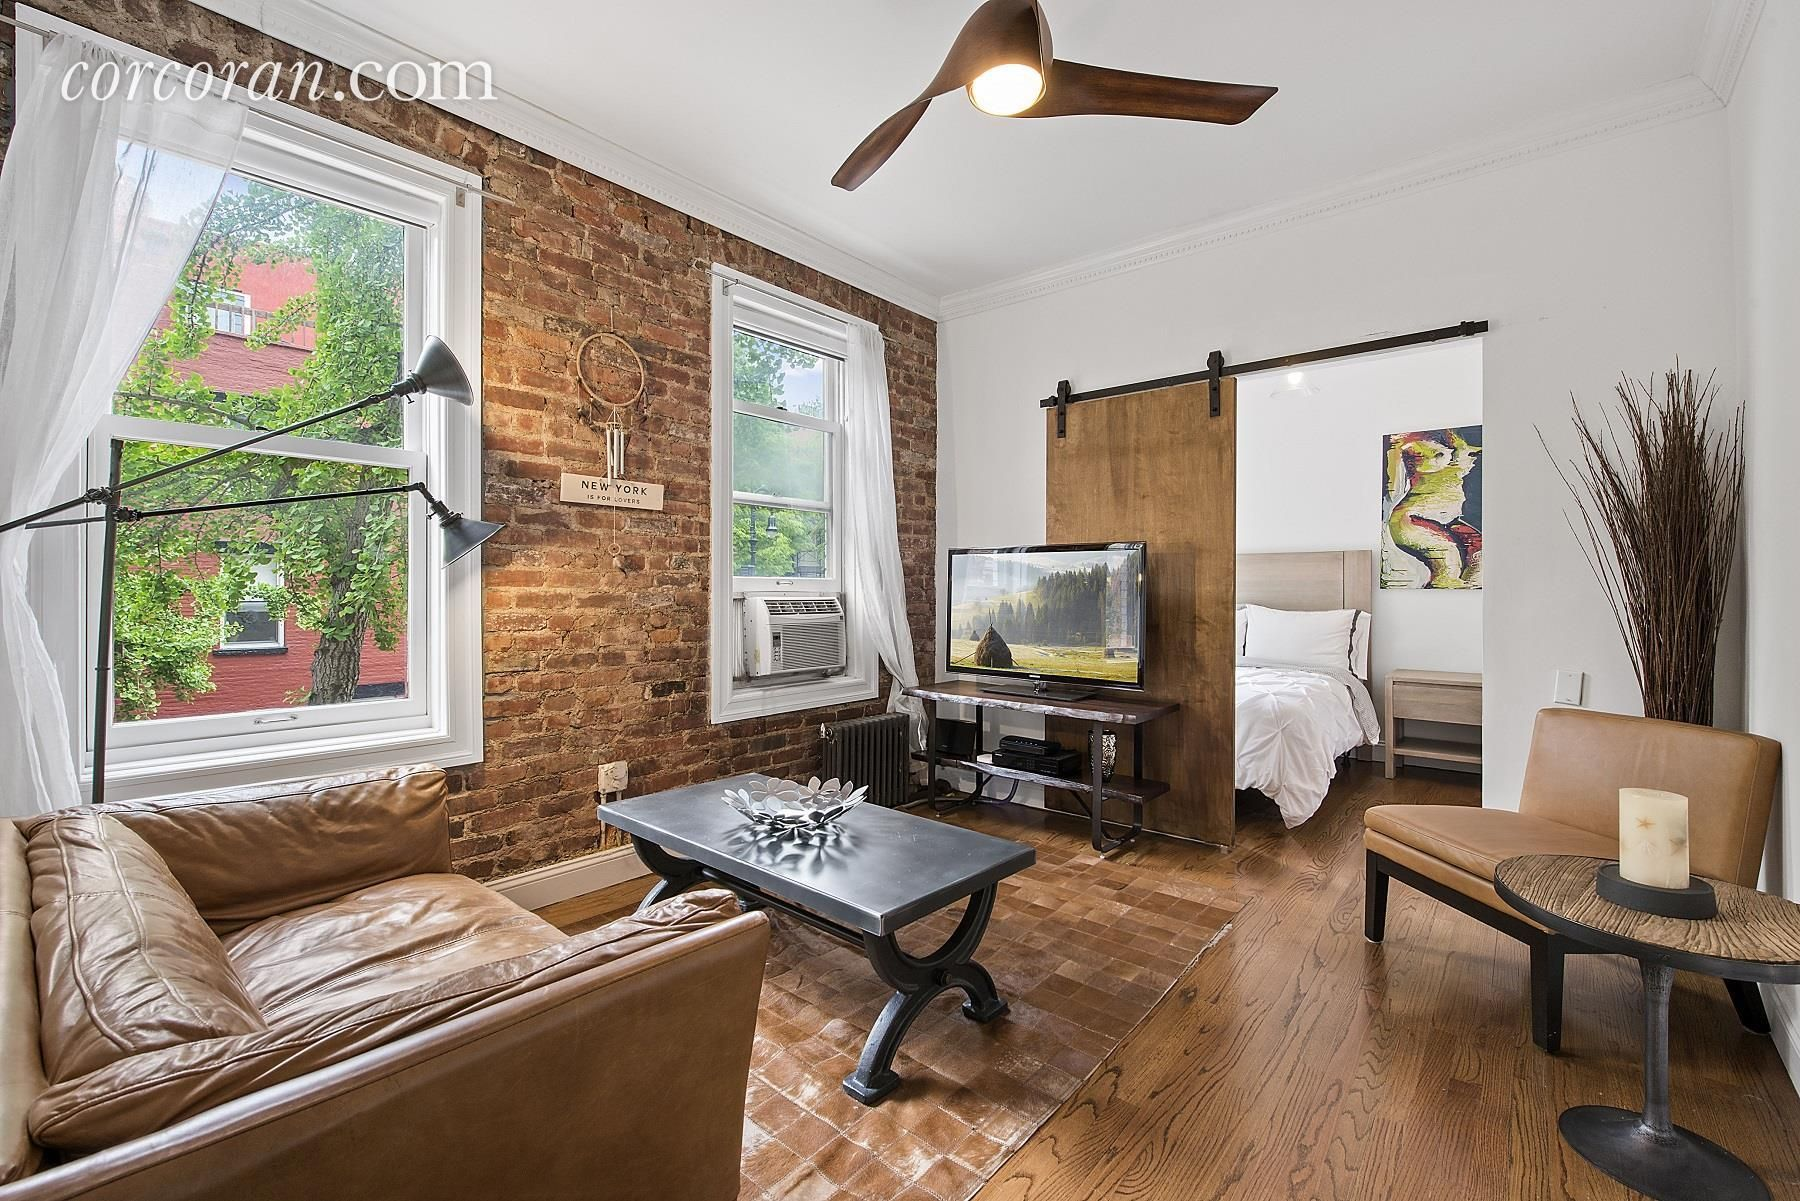 West Village, NY Compass New york city apartment, One